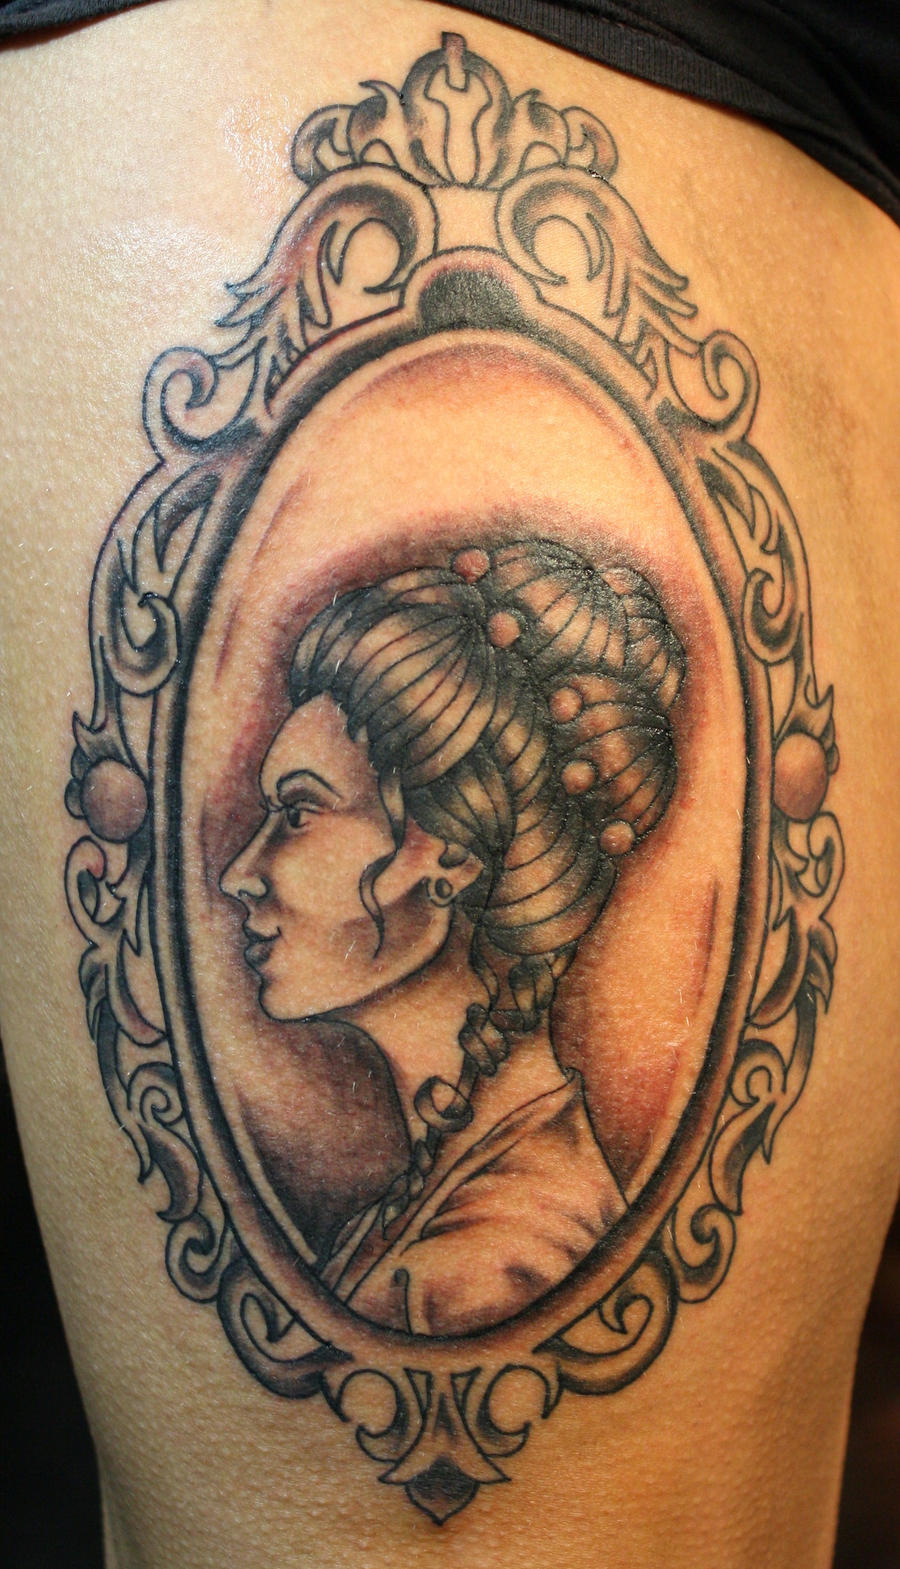 victorian cameo tattoo by AirEelle on DeviantArt